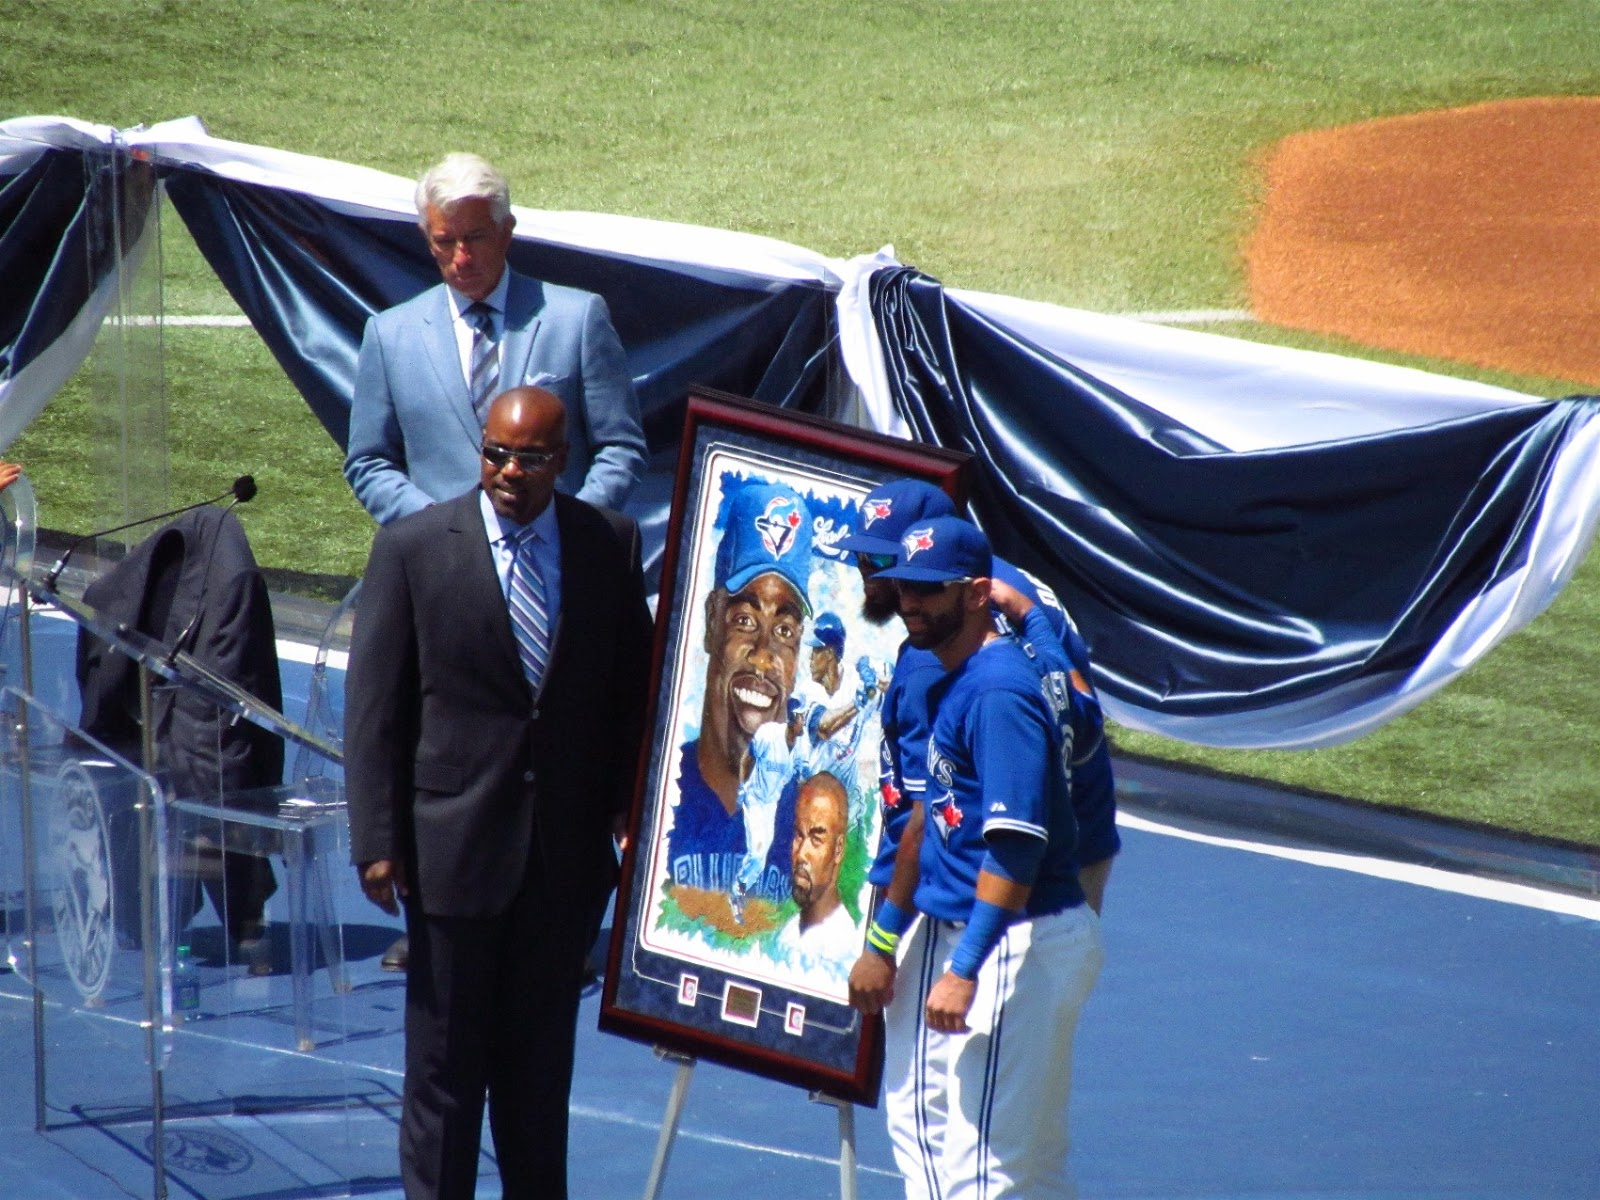 The World of Gord: Carlos Delgado Induction to the Level of